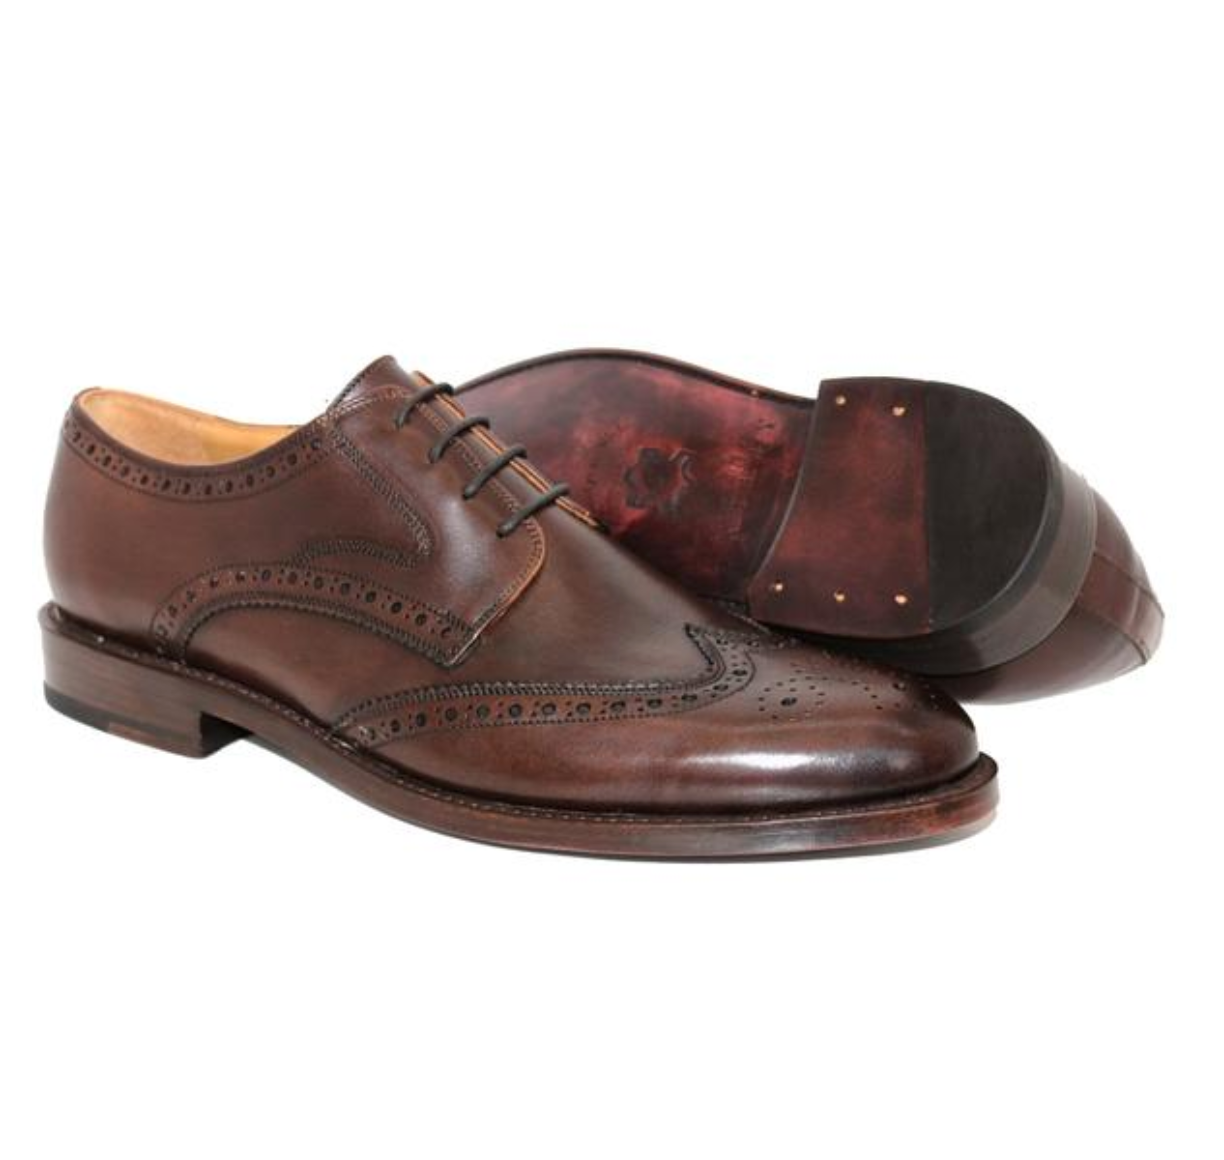 5270 NY Wing Tip Derby